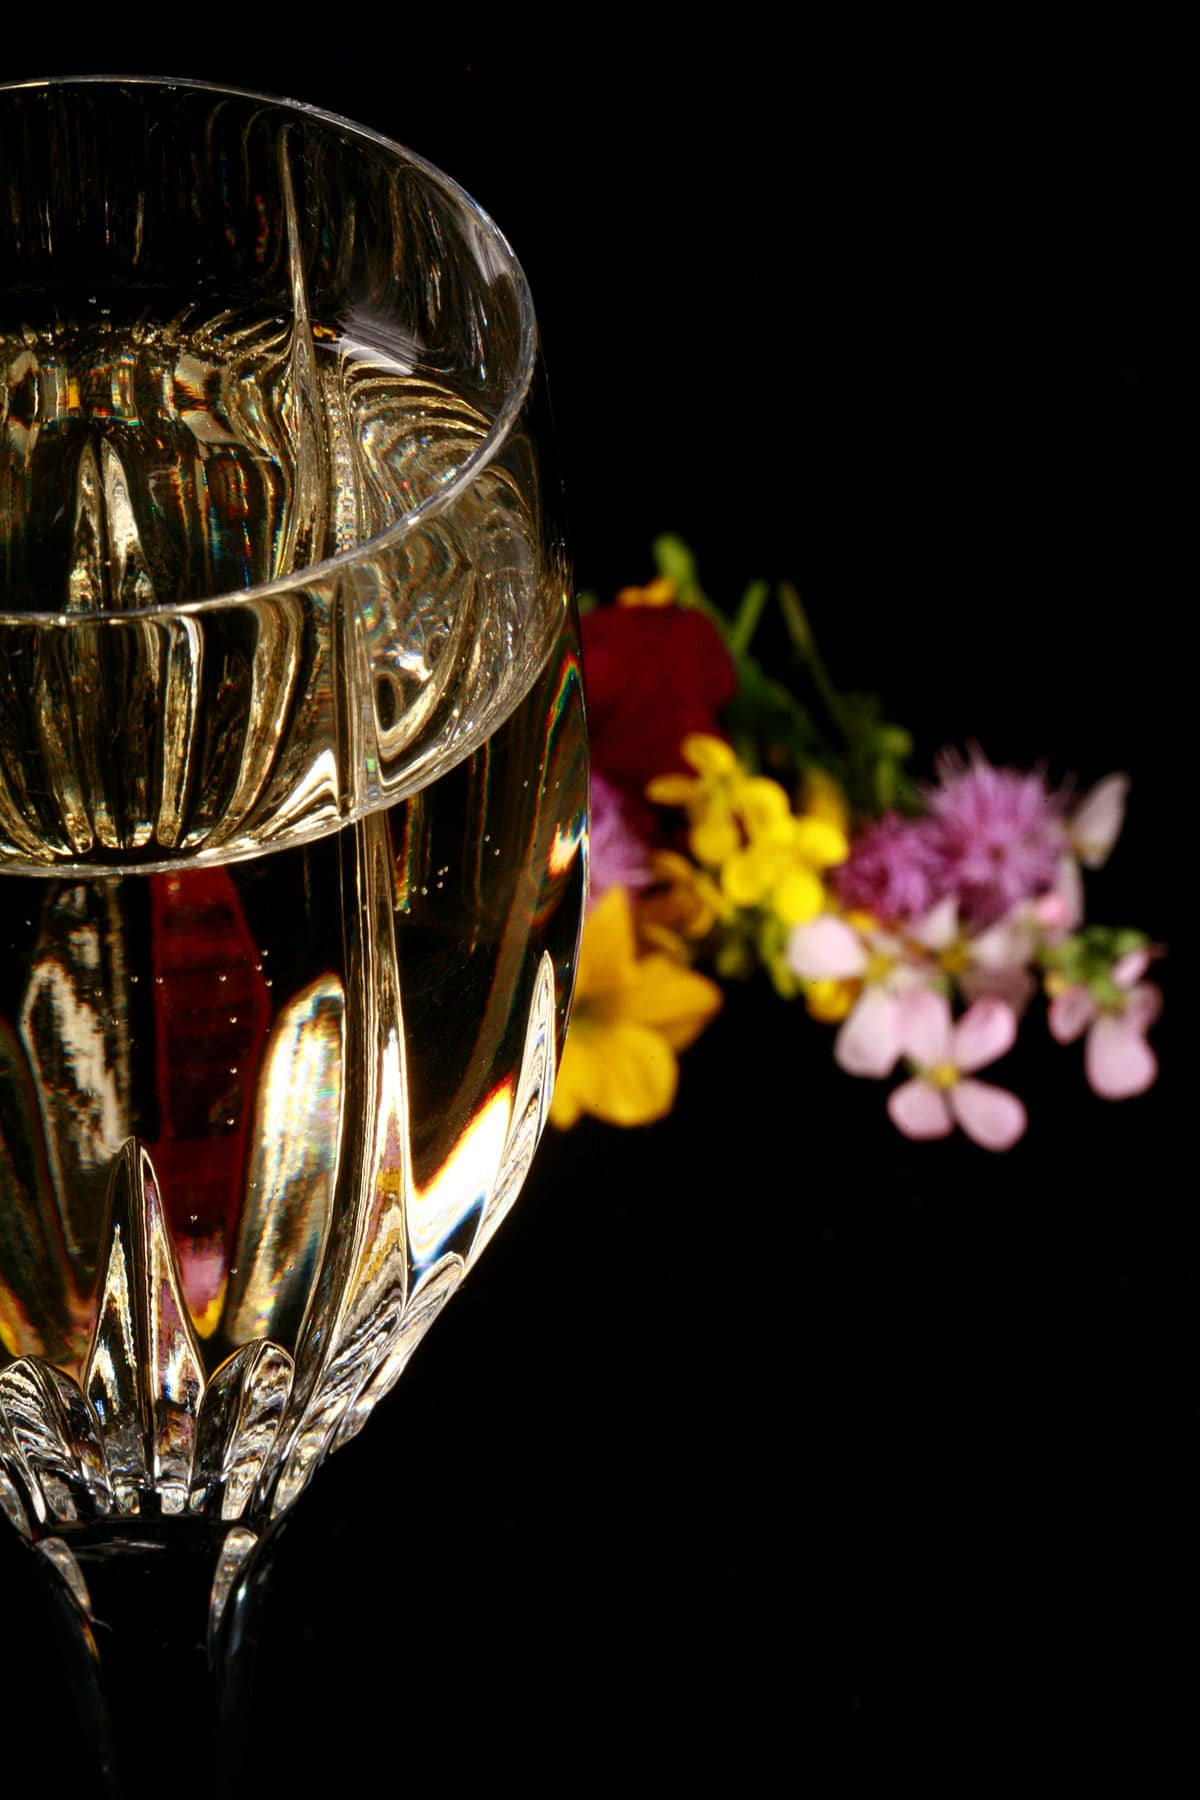 A close up photo of a glass of mead, with random wildflowers at the base of the glass.